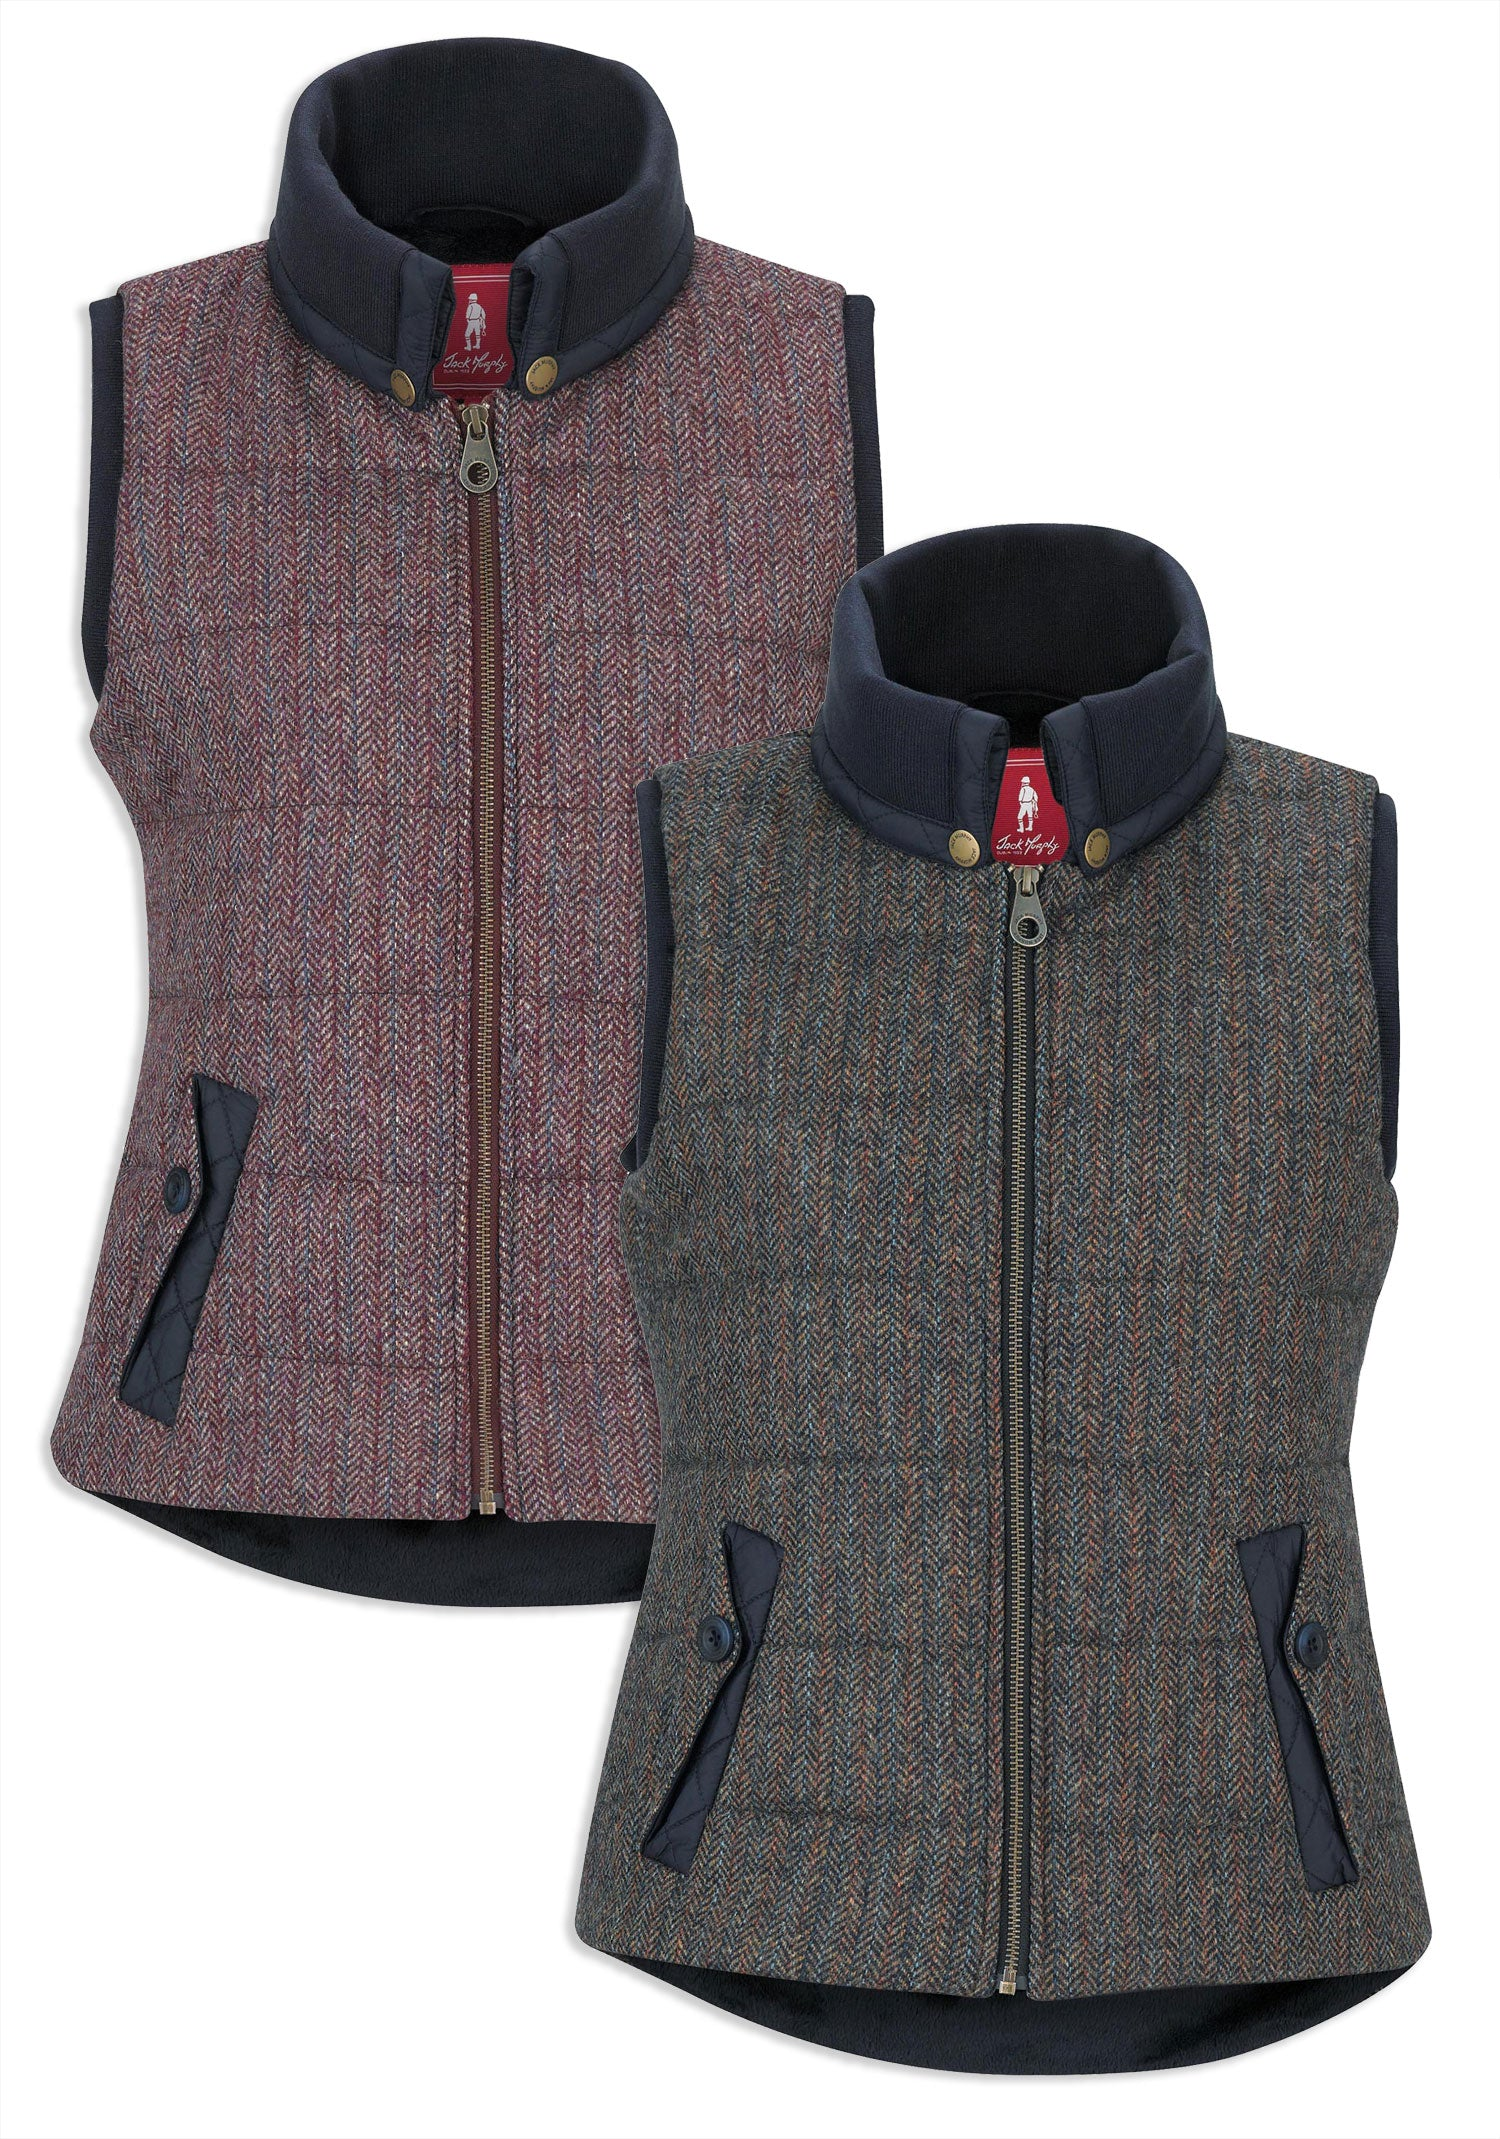 Jack Murphy Malory Ladies Tweed Waistcoat Gilet in plum berry and outdoor teal